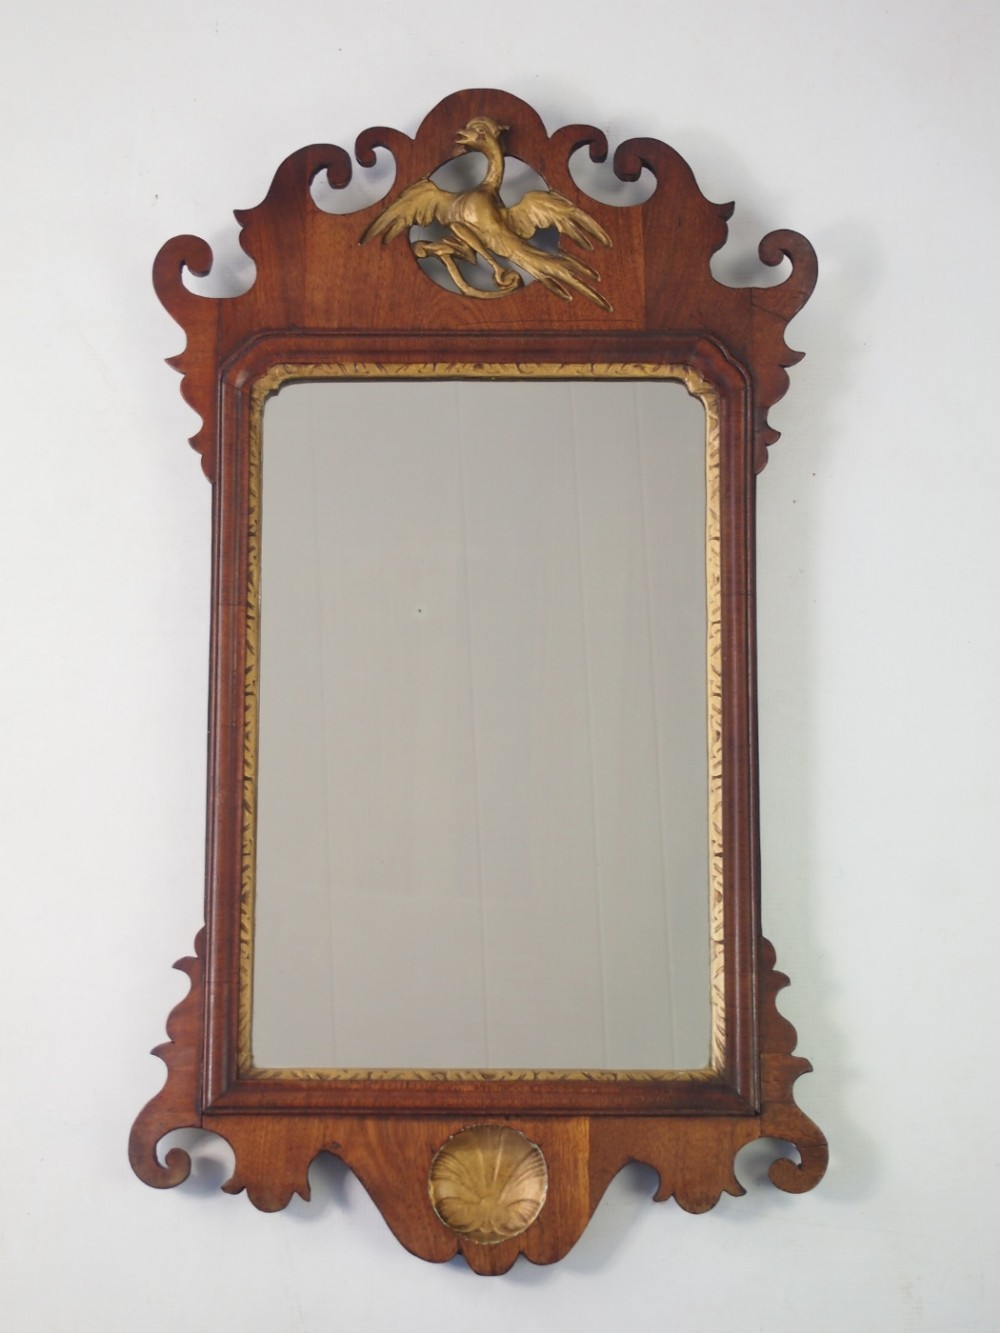 Antique Georgian Fretwork Wall Mirror 370536